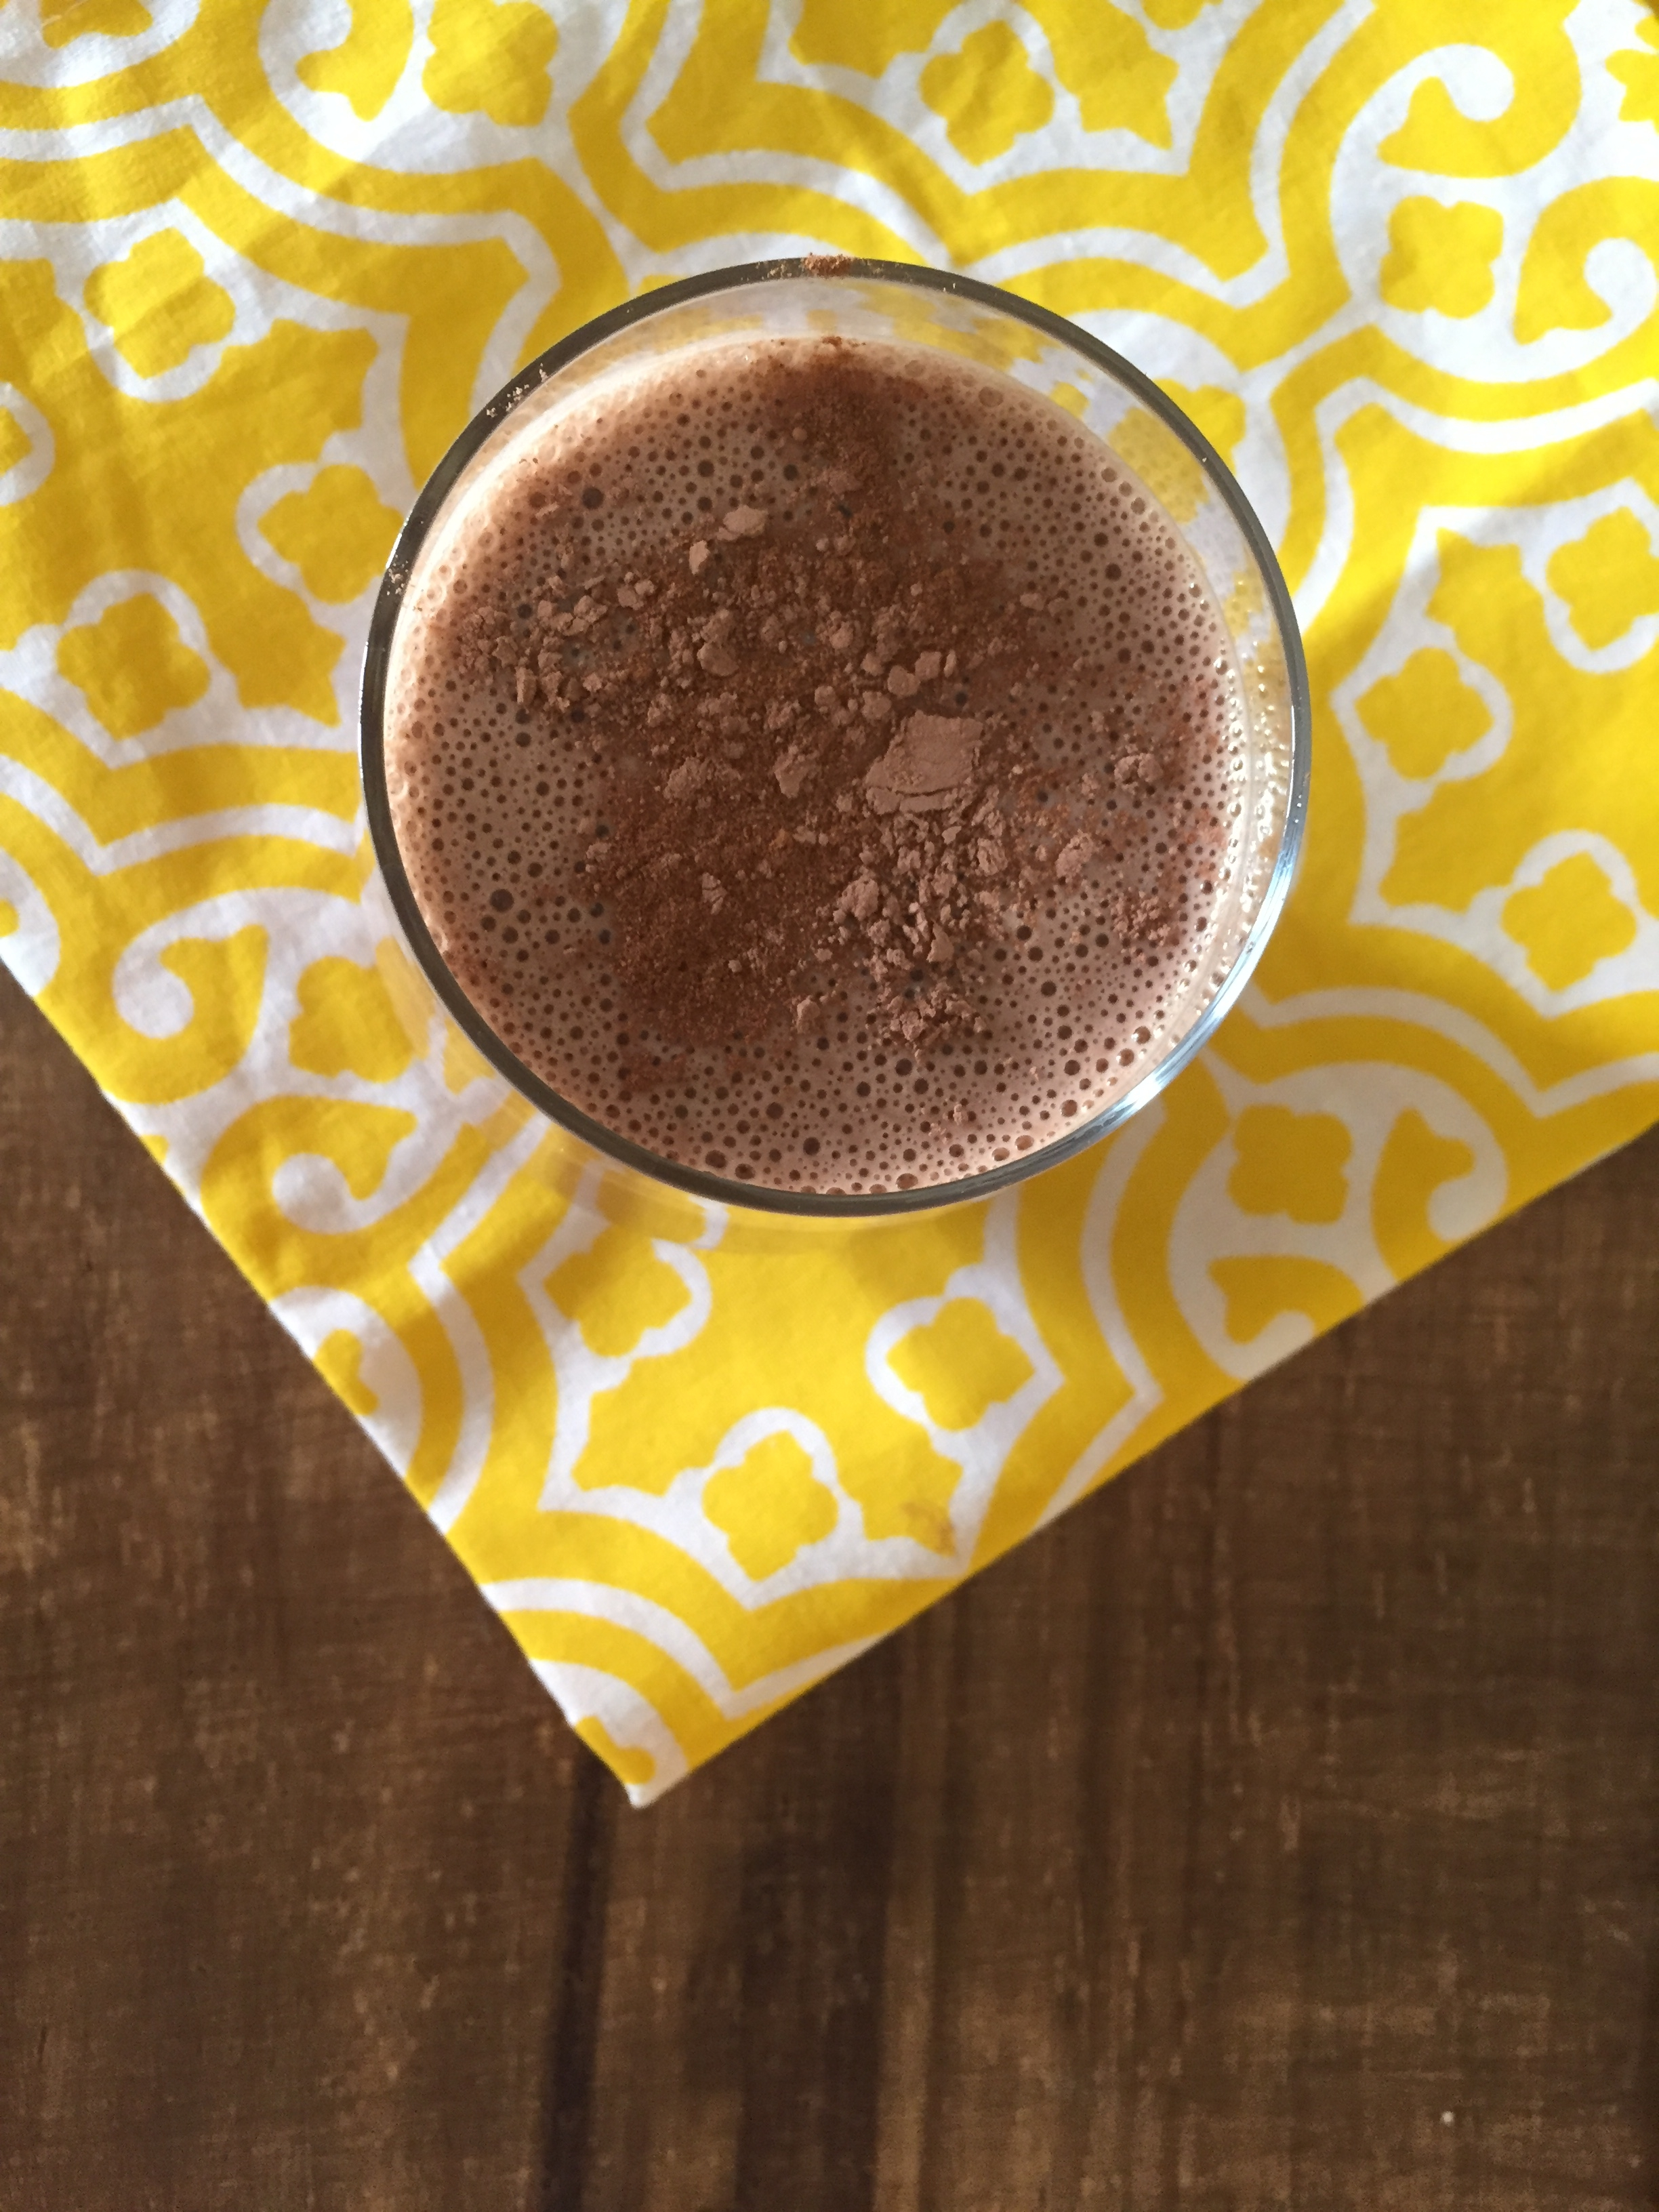 Cacao and banana smoothie in a glass.